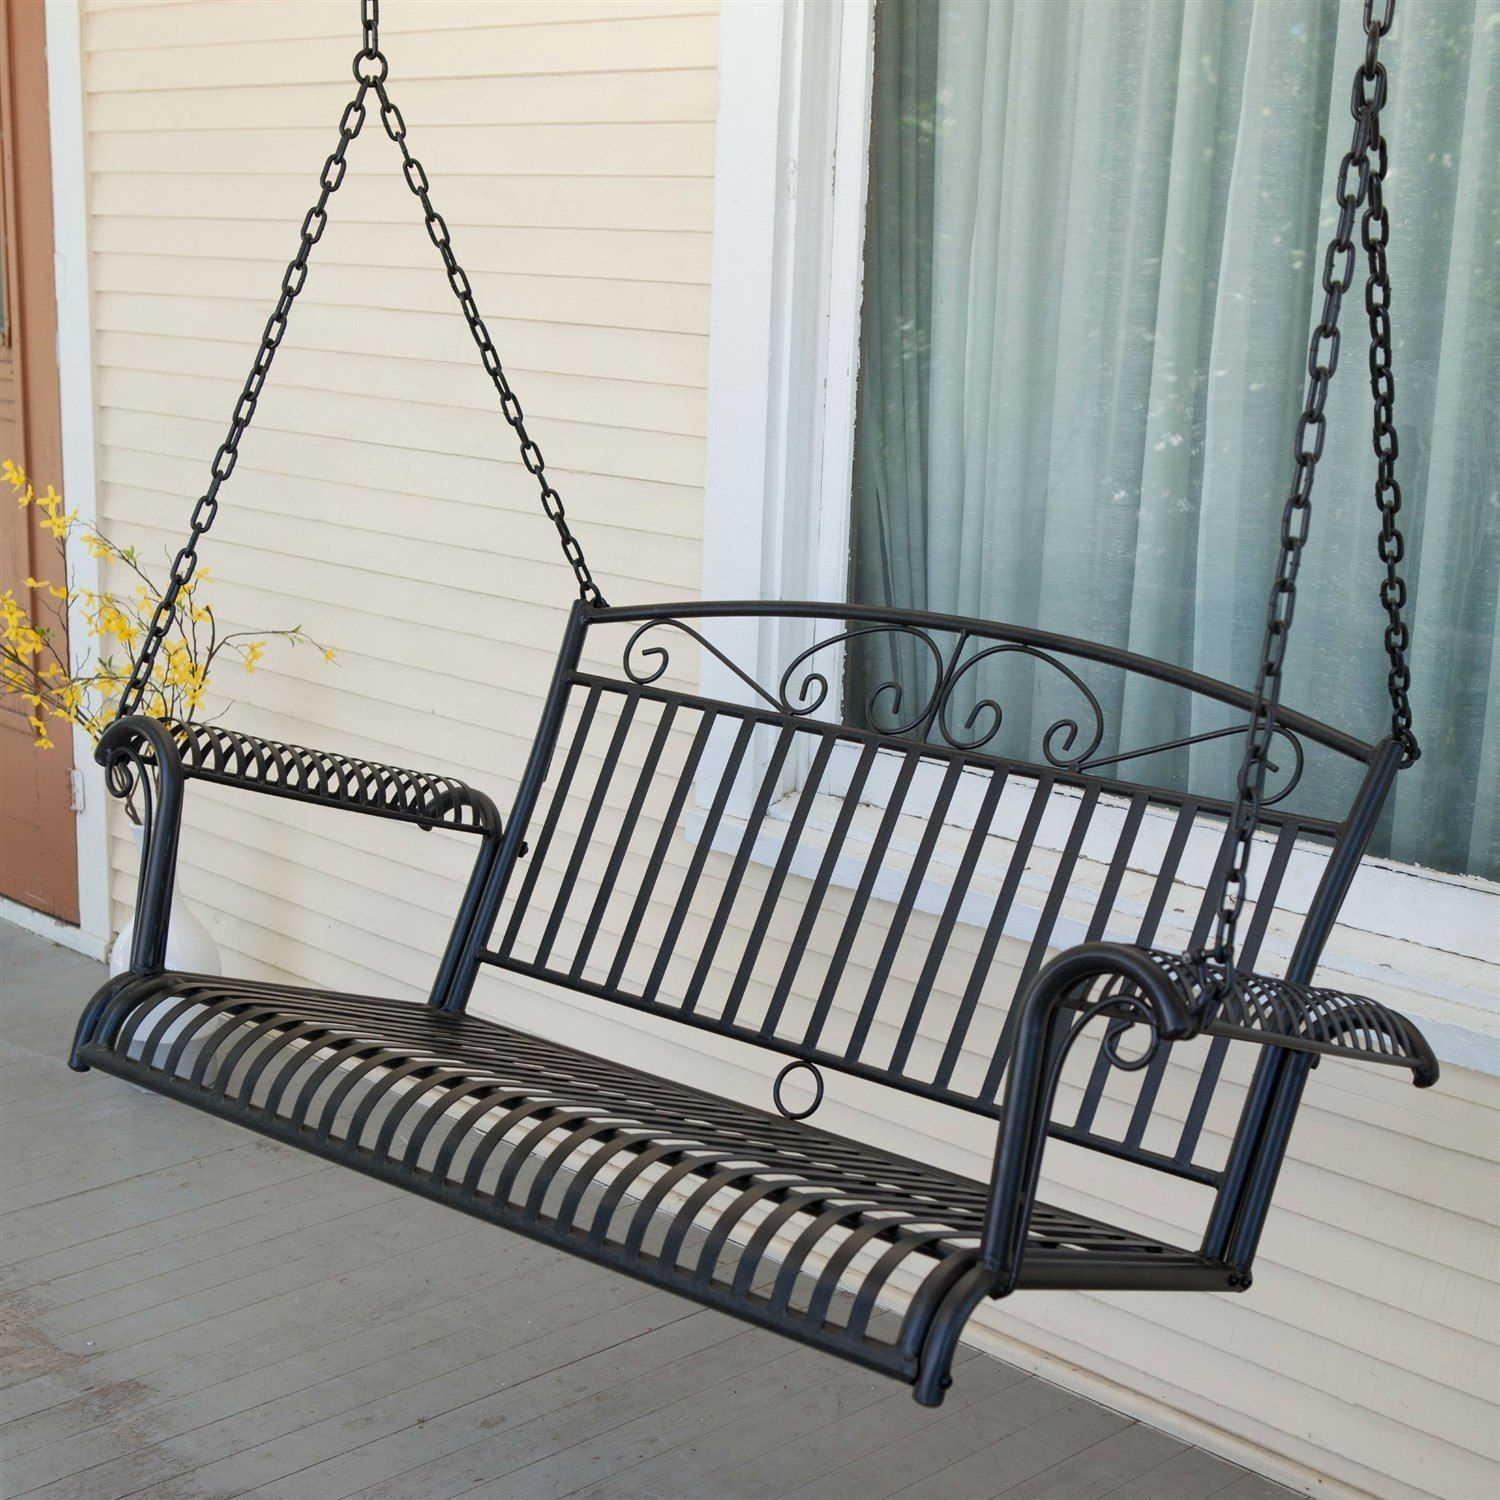 Wrought Iron Outdoor Patio 4 Ft Porch Swing In Black | Porch With Classic Porch Swings (Image 25 of 25)